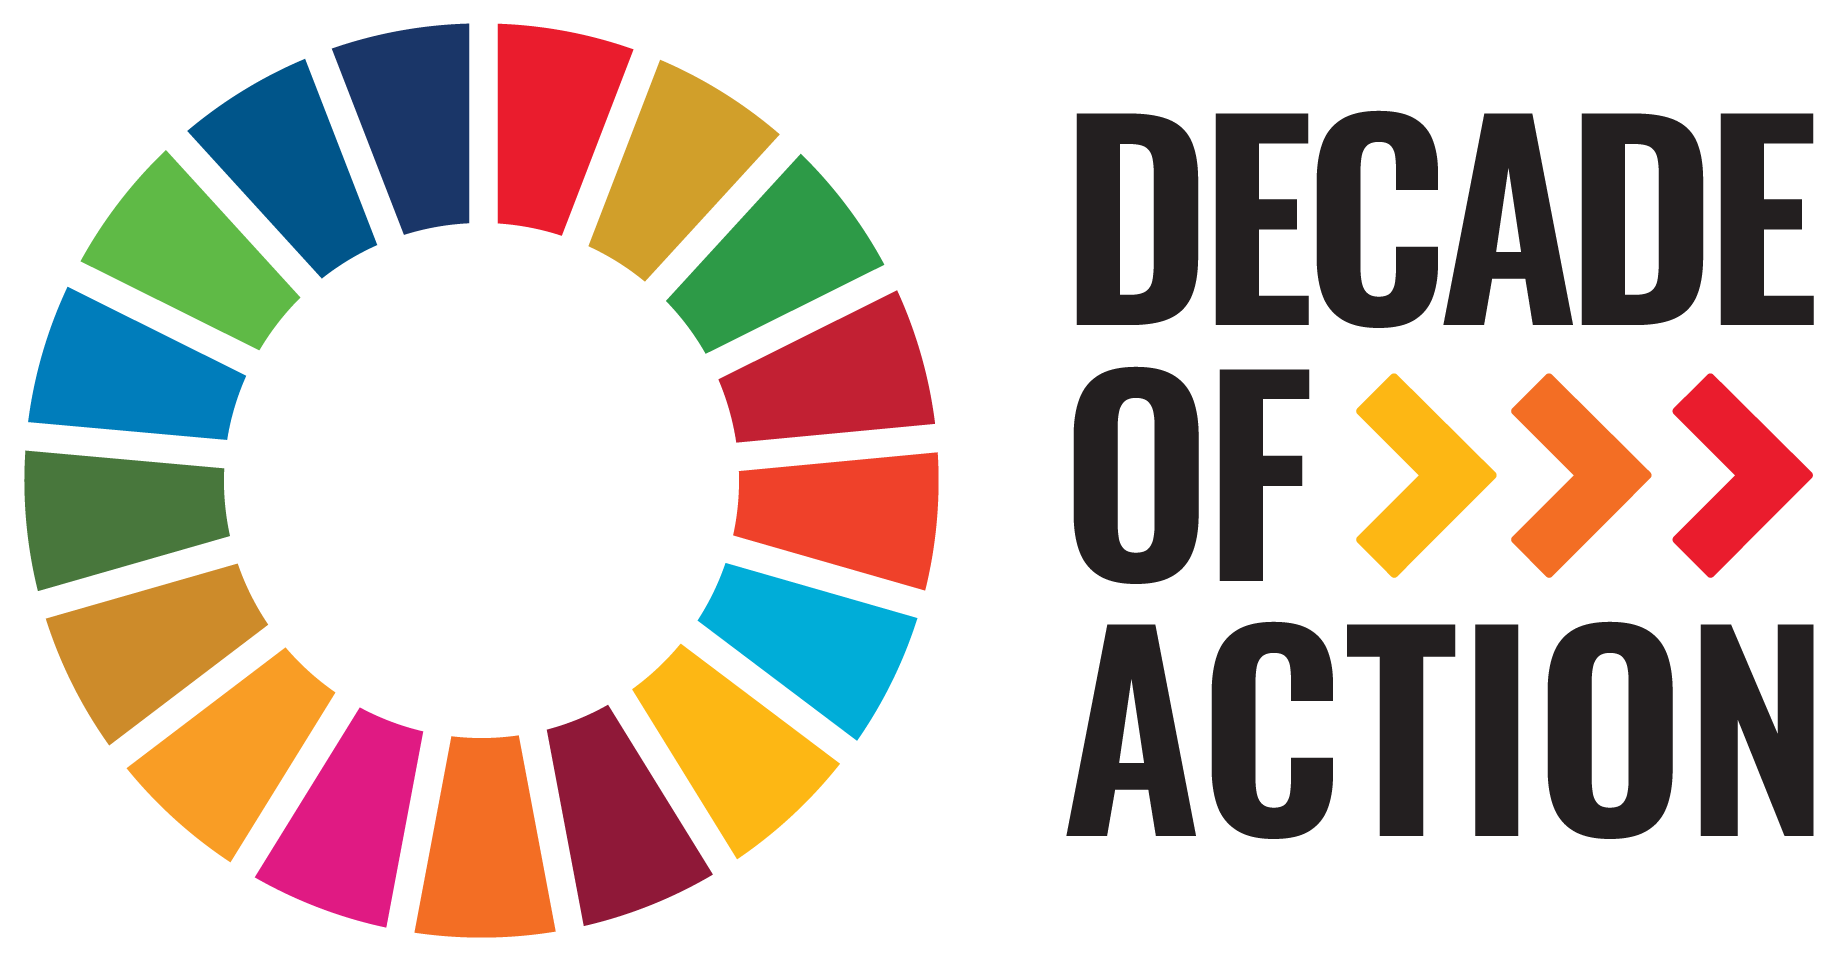 sdg_decade_of_action_e.png